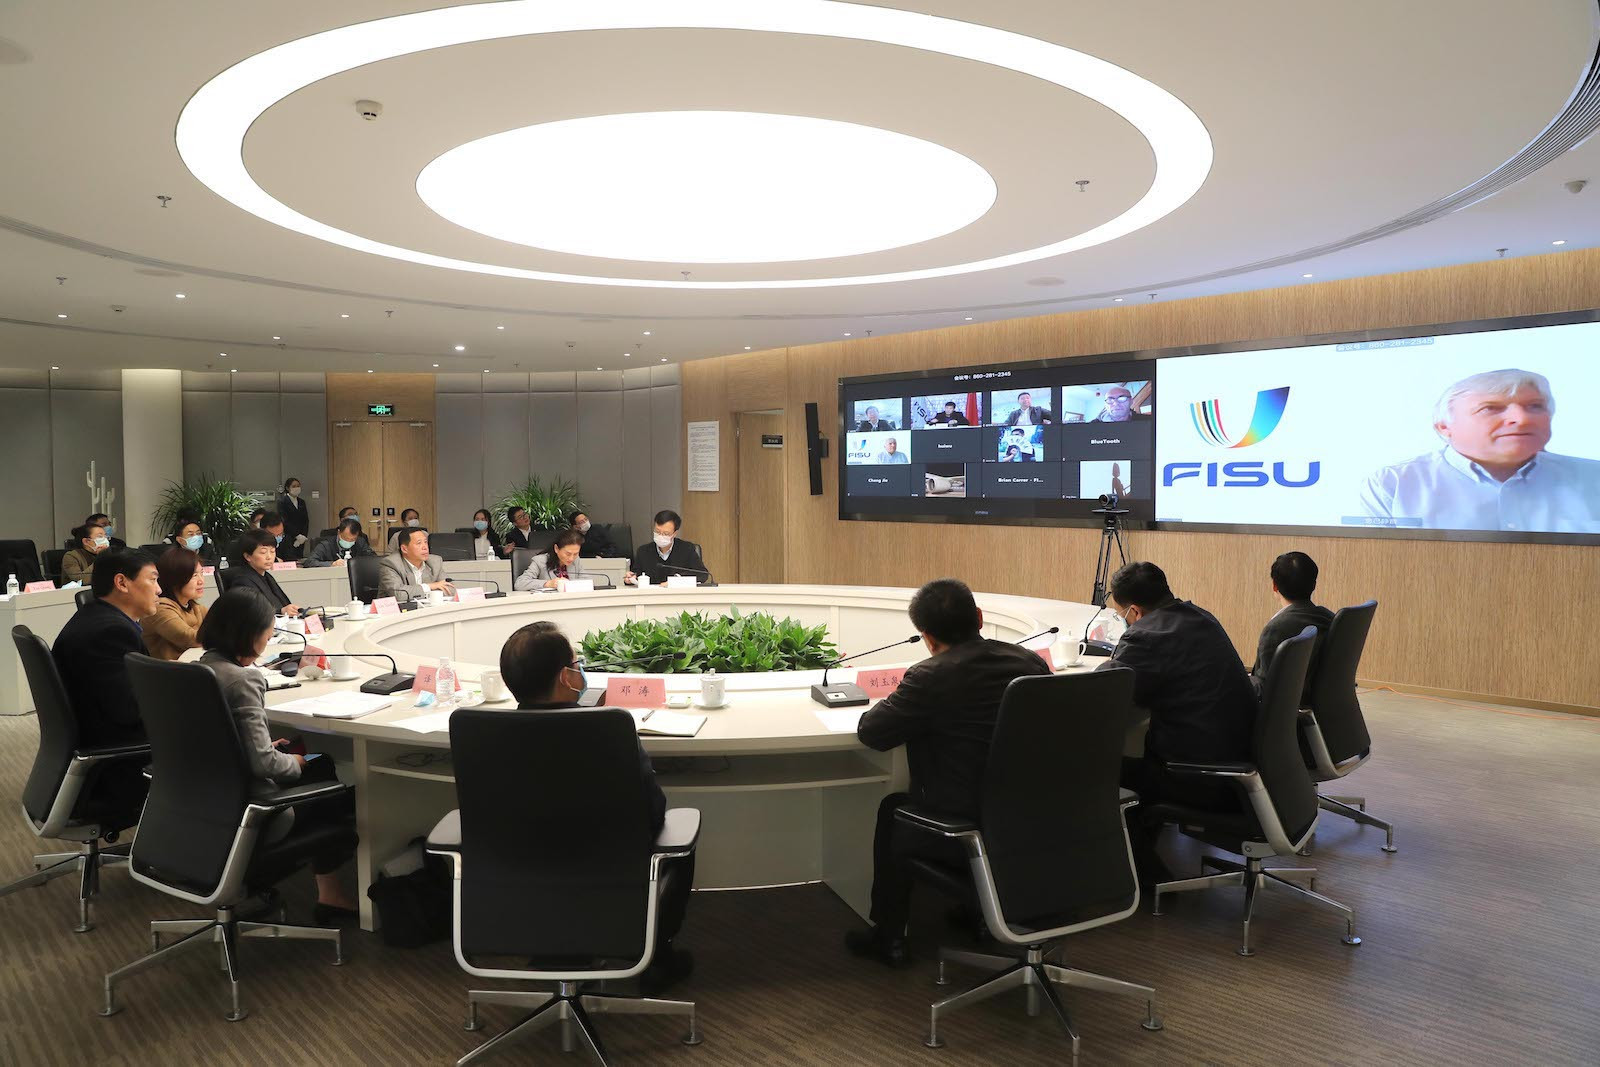 Chengdu 2021 provide update to FISU on video conference meeting